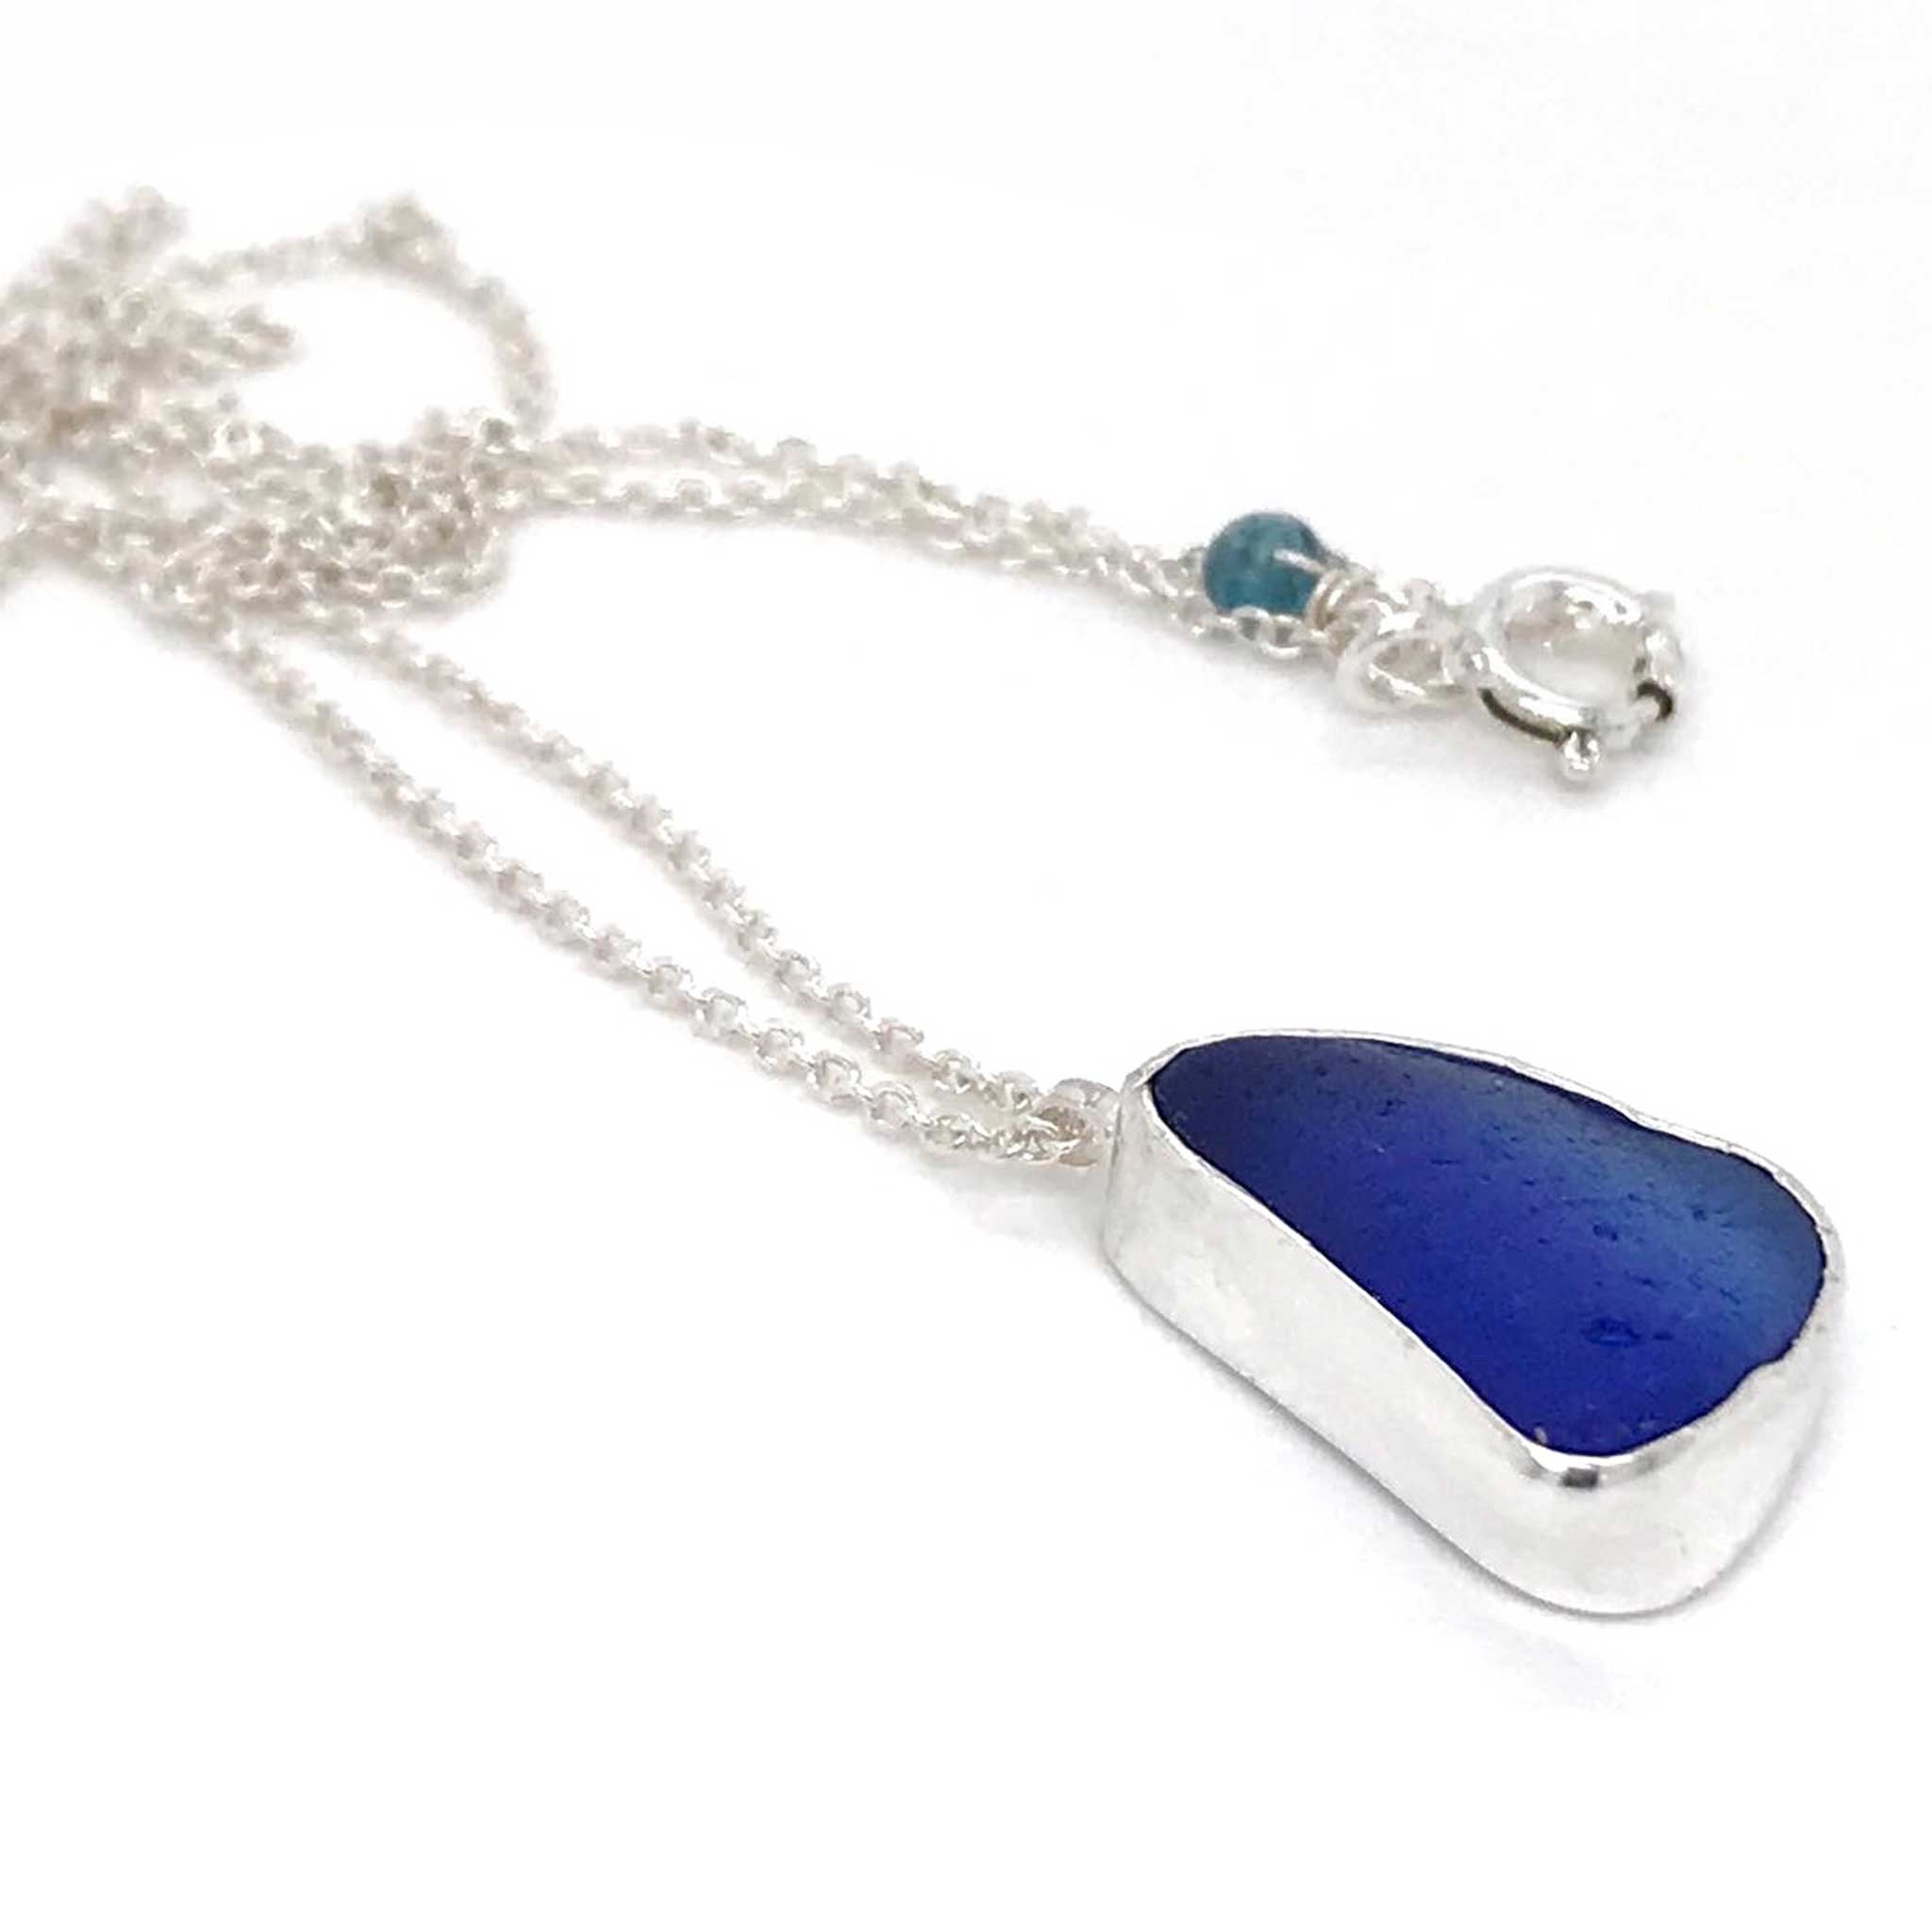 blue pendant necklace sea glass and sterling silver kriket broadhurst jewelry store near me